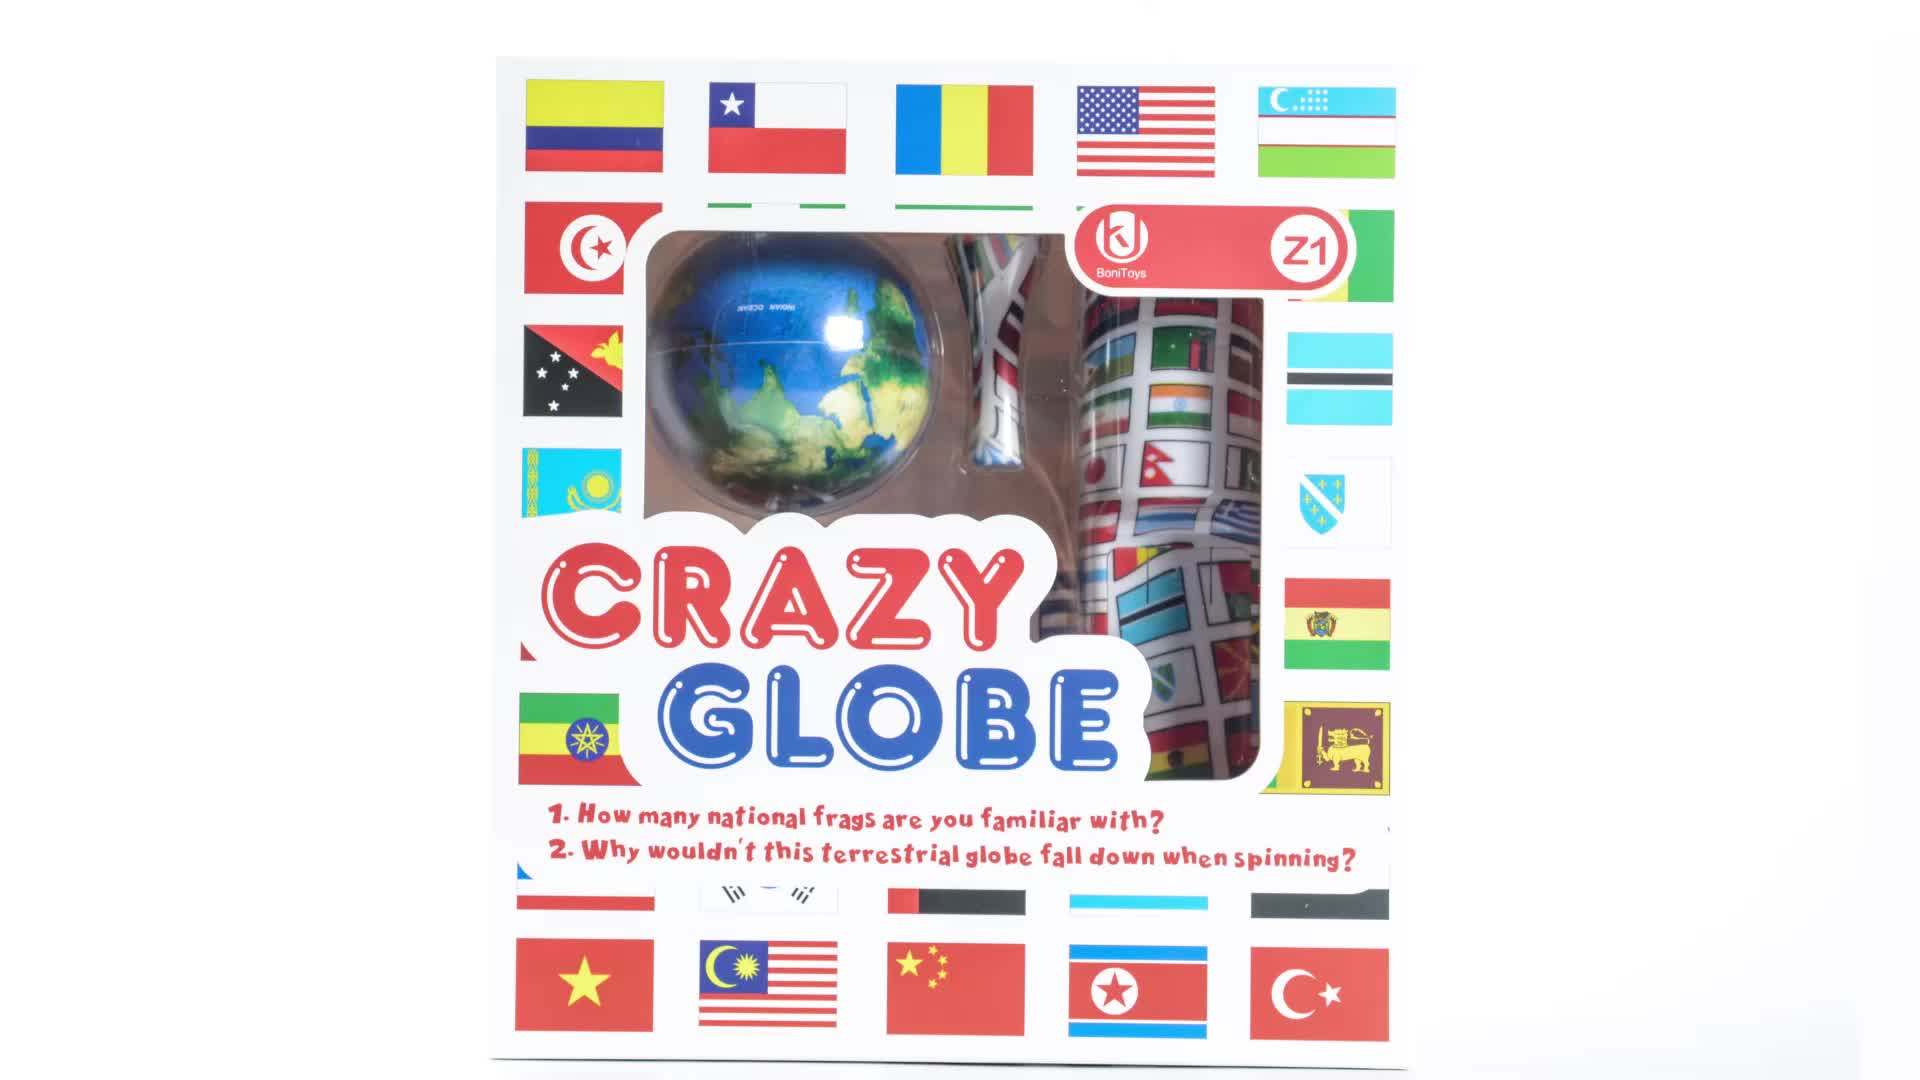 Bonitoys 2018 Newest Product Z1 Crazy Globe toys for Kids Best crazy ball gift